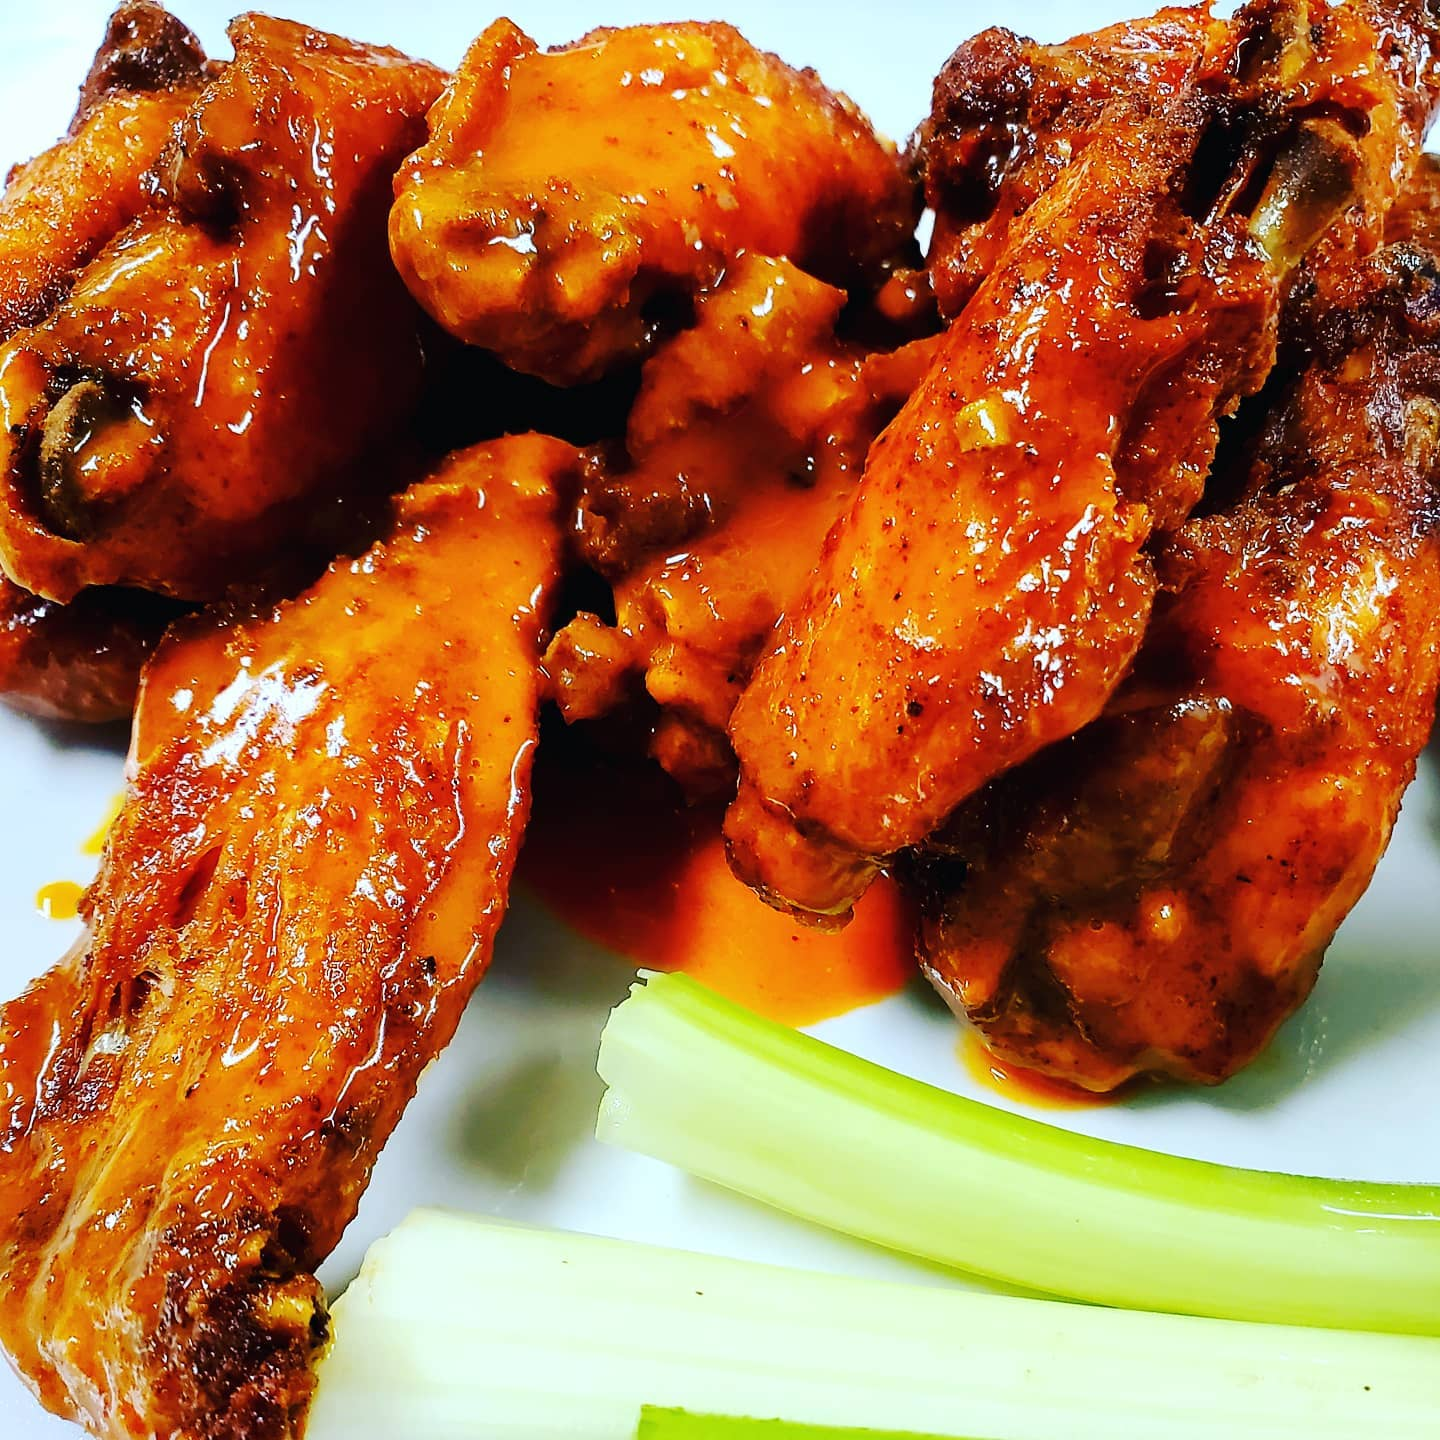 assortment of chicken wings